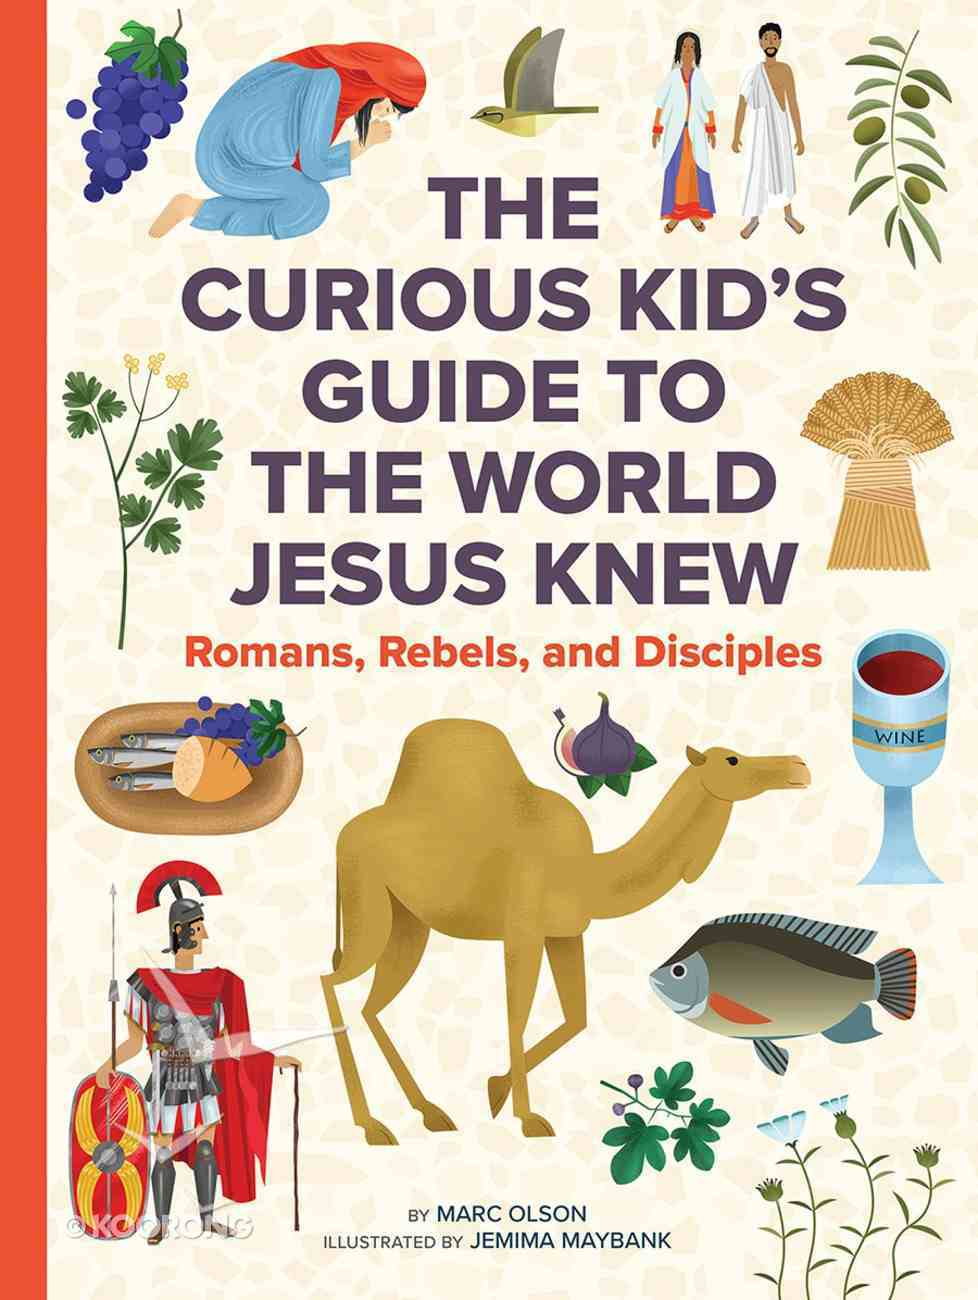 The Curious Kid's Guide to the World Jesus Knew: Romans, Rebels, and Disciples Hardback